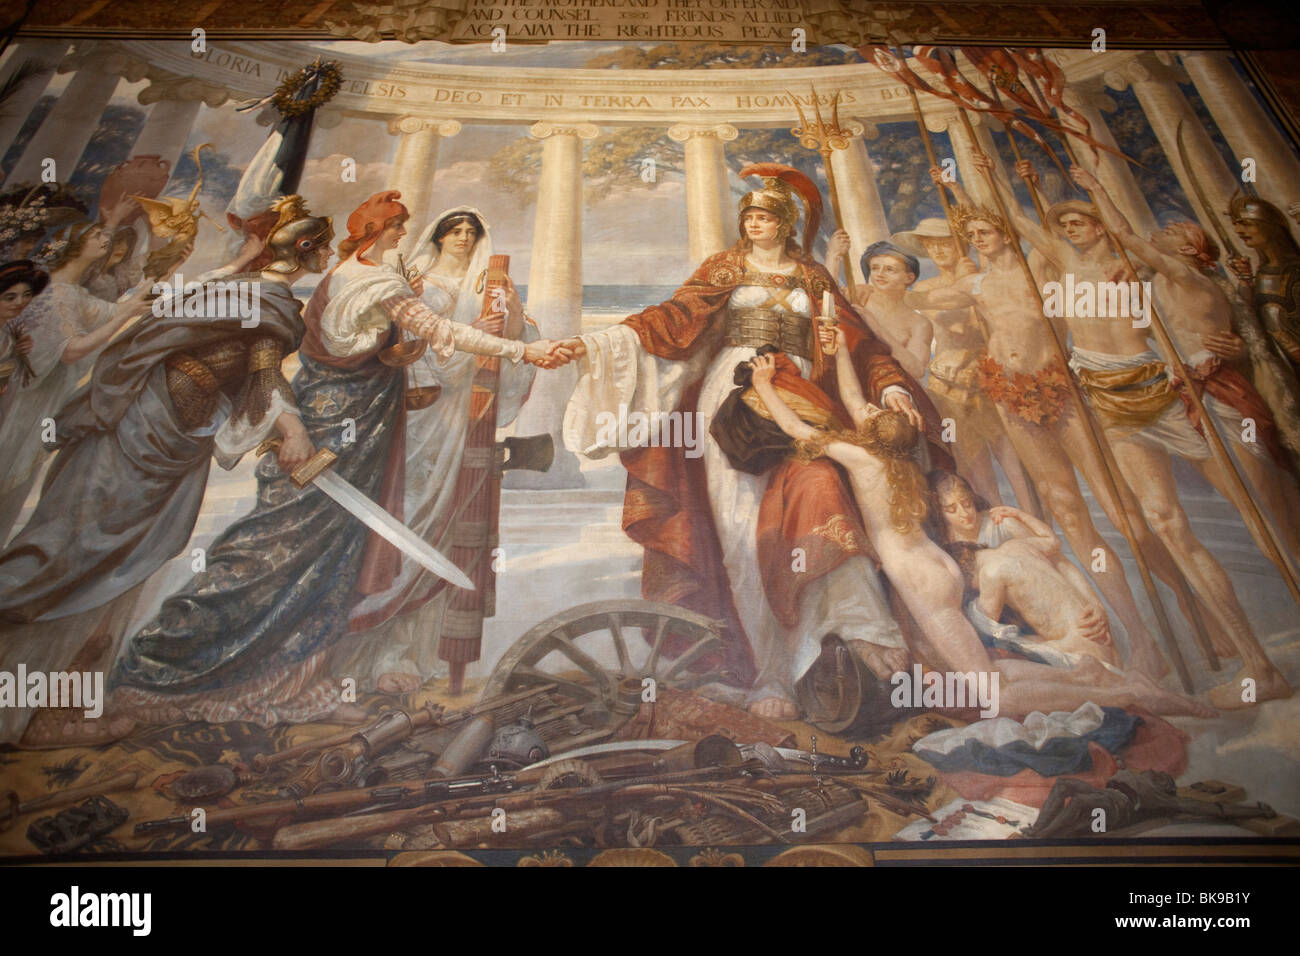 Artwork depicting Britannia in a government building, Foreign Office, Whitehall, London, England - Stock Image